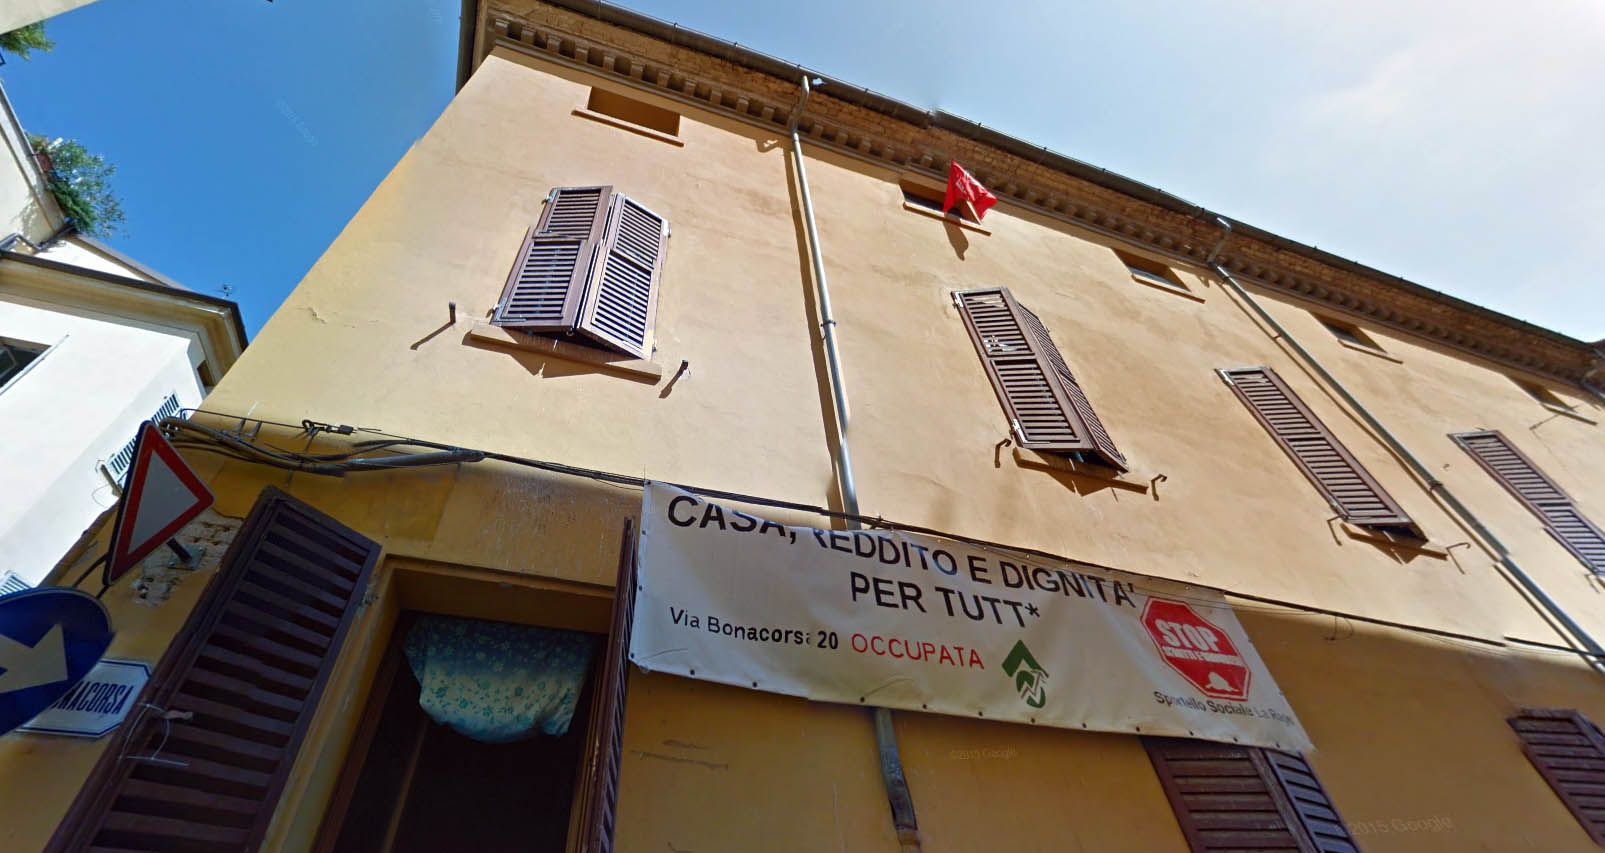 L'edificio occupato in via Bonacorsa 20.